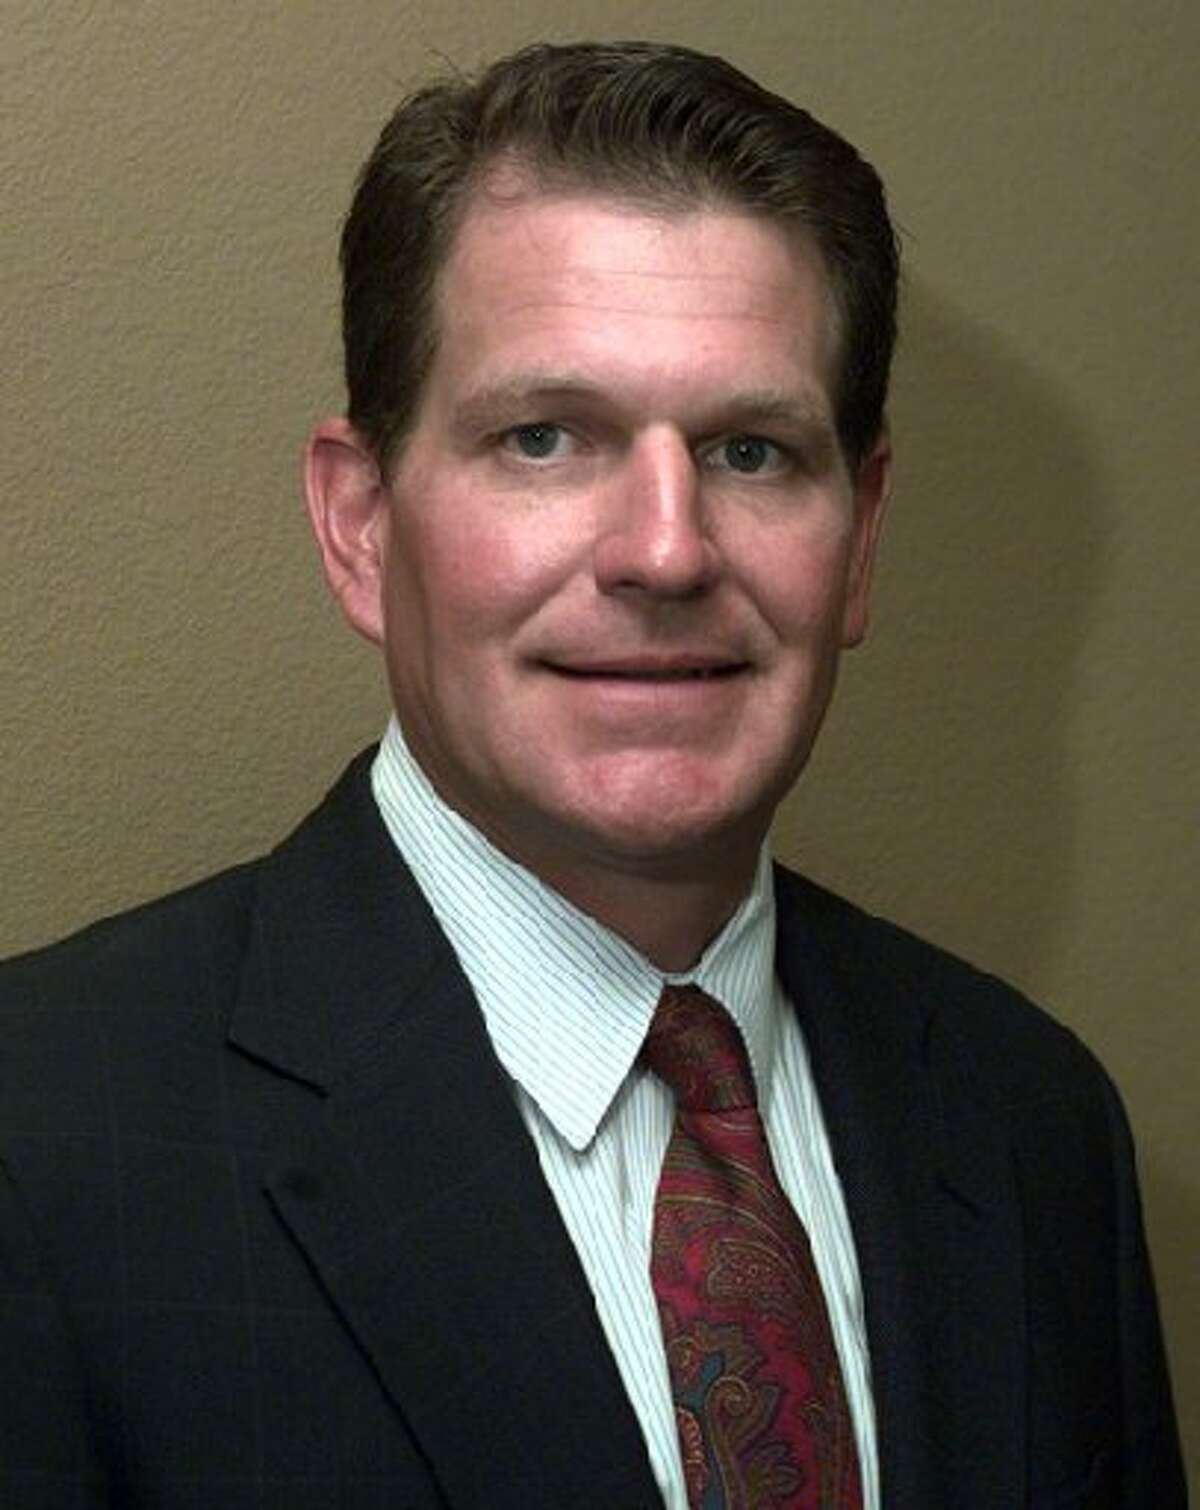 Scott Dufford will seek reelection to City Council this fall.